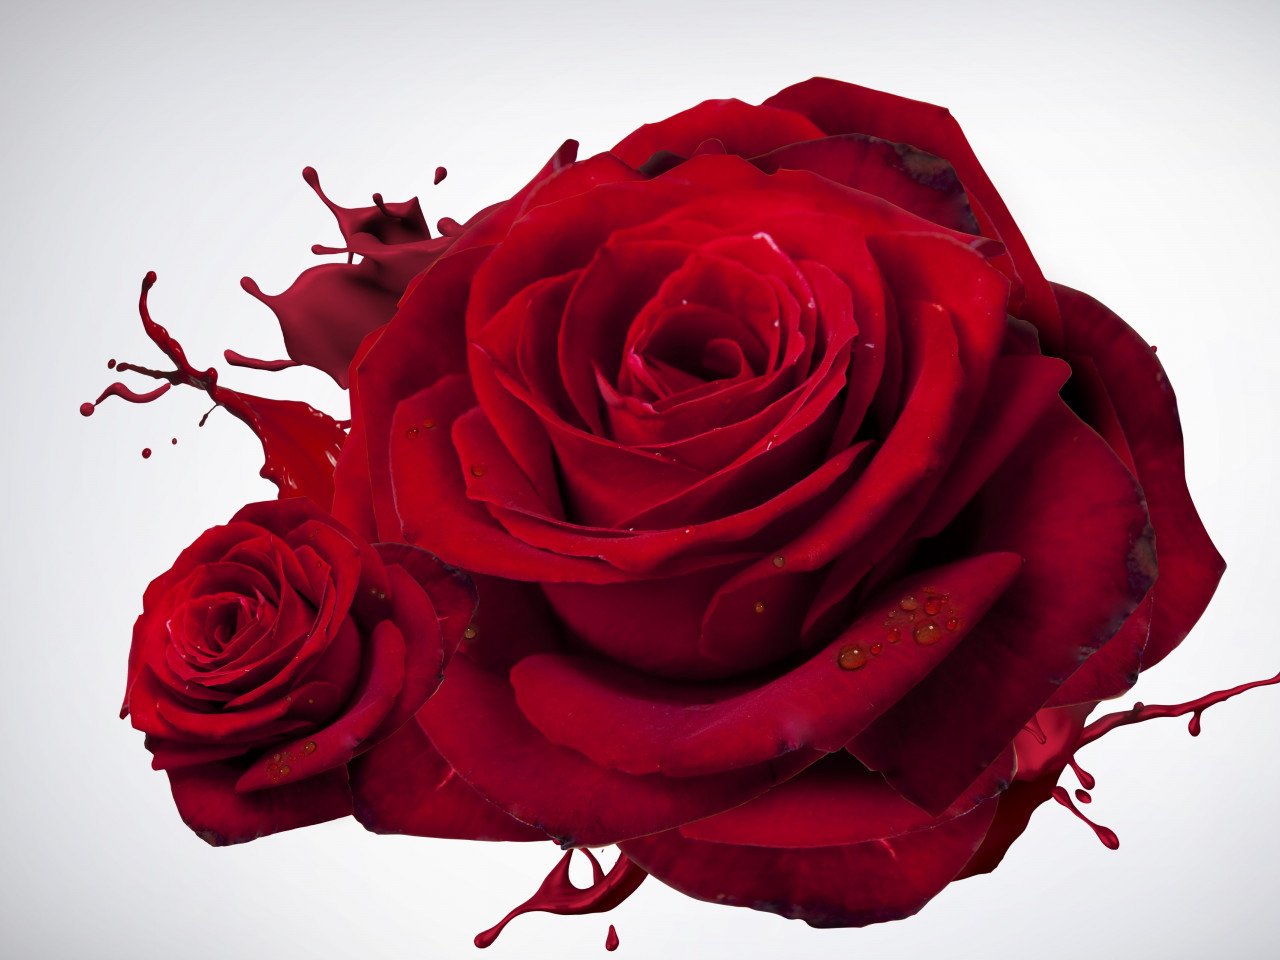 The most beautiful red roses wallpaper 1280x960